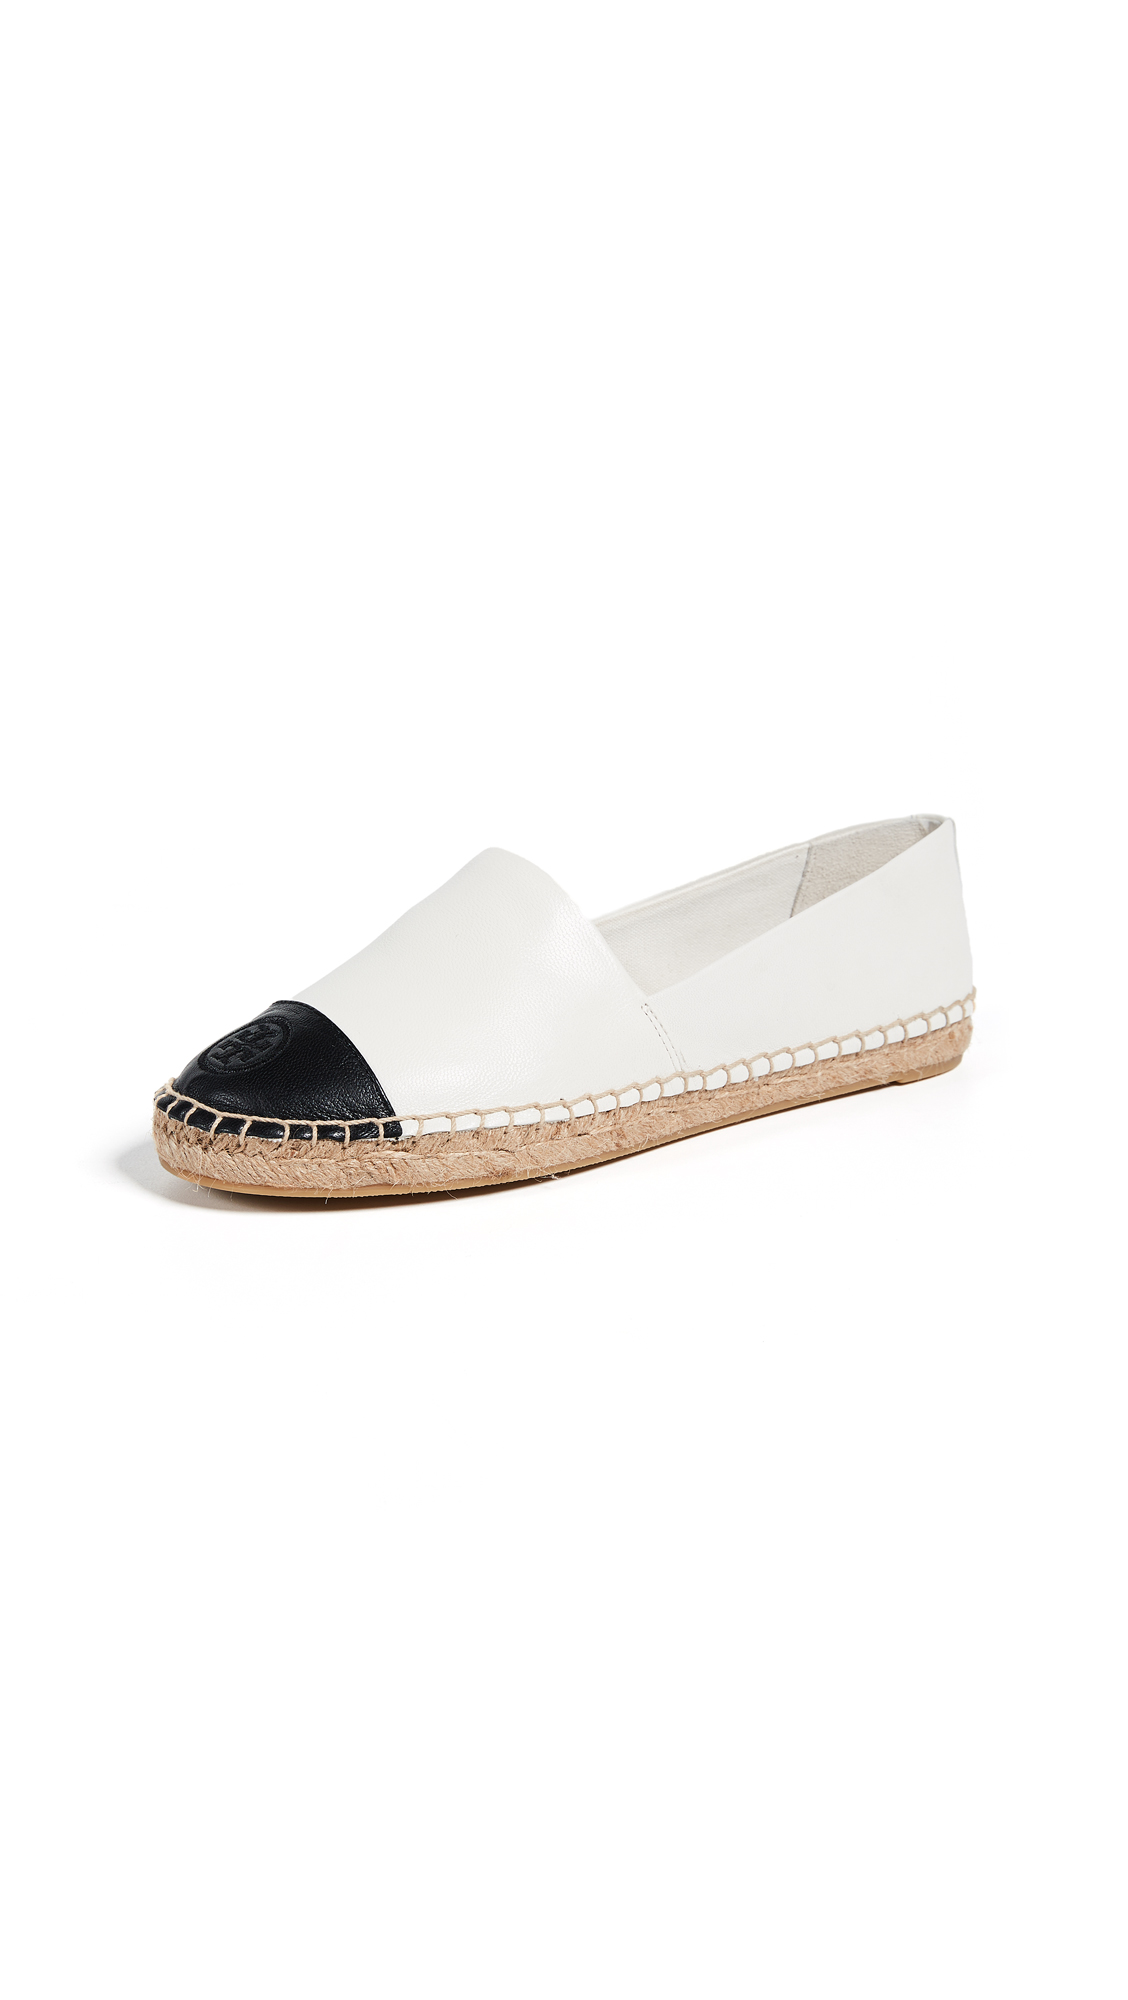 Tory Burch Colorblock Espadrilles